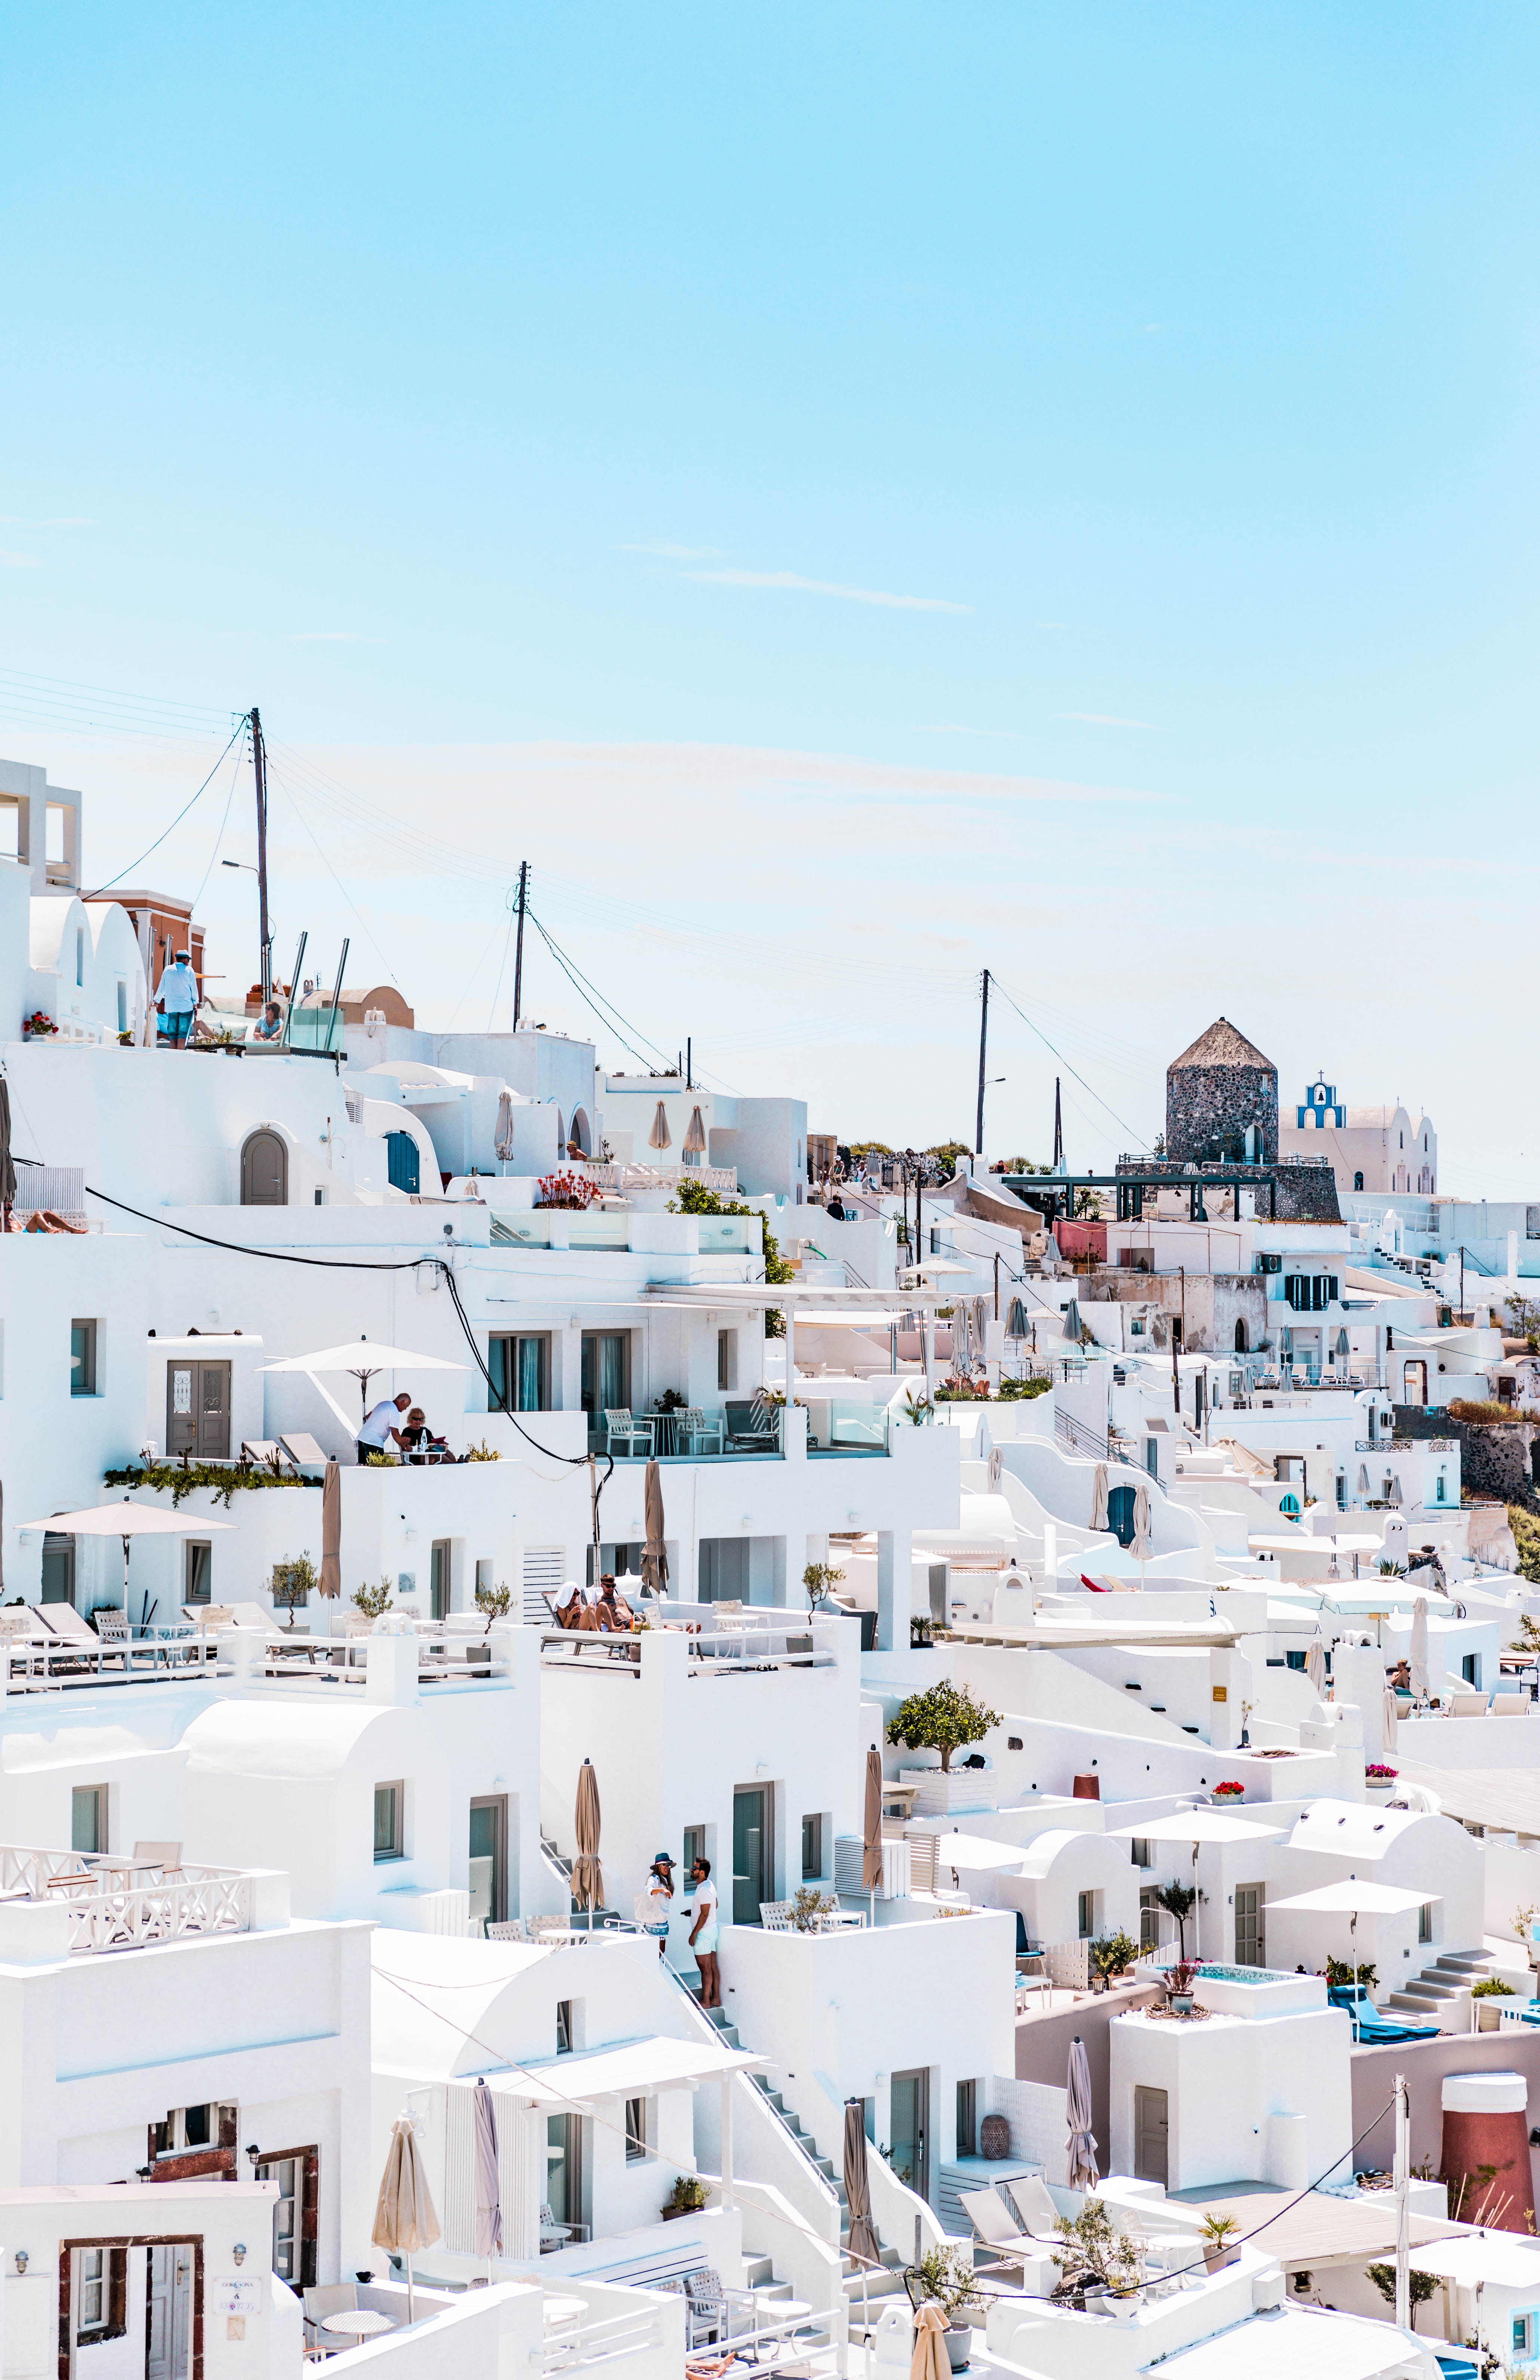 white concrete houses under blue sky at daytime